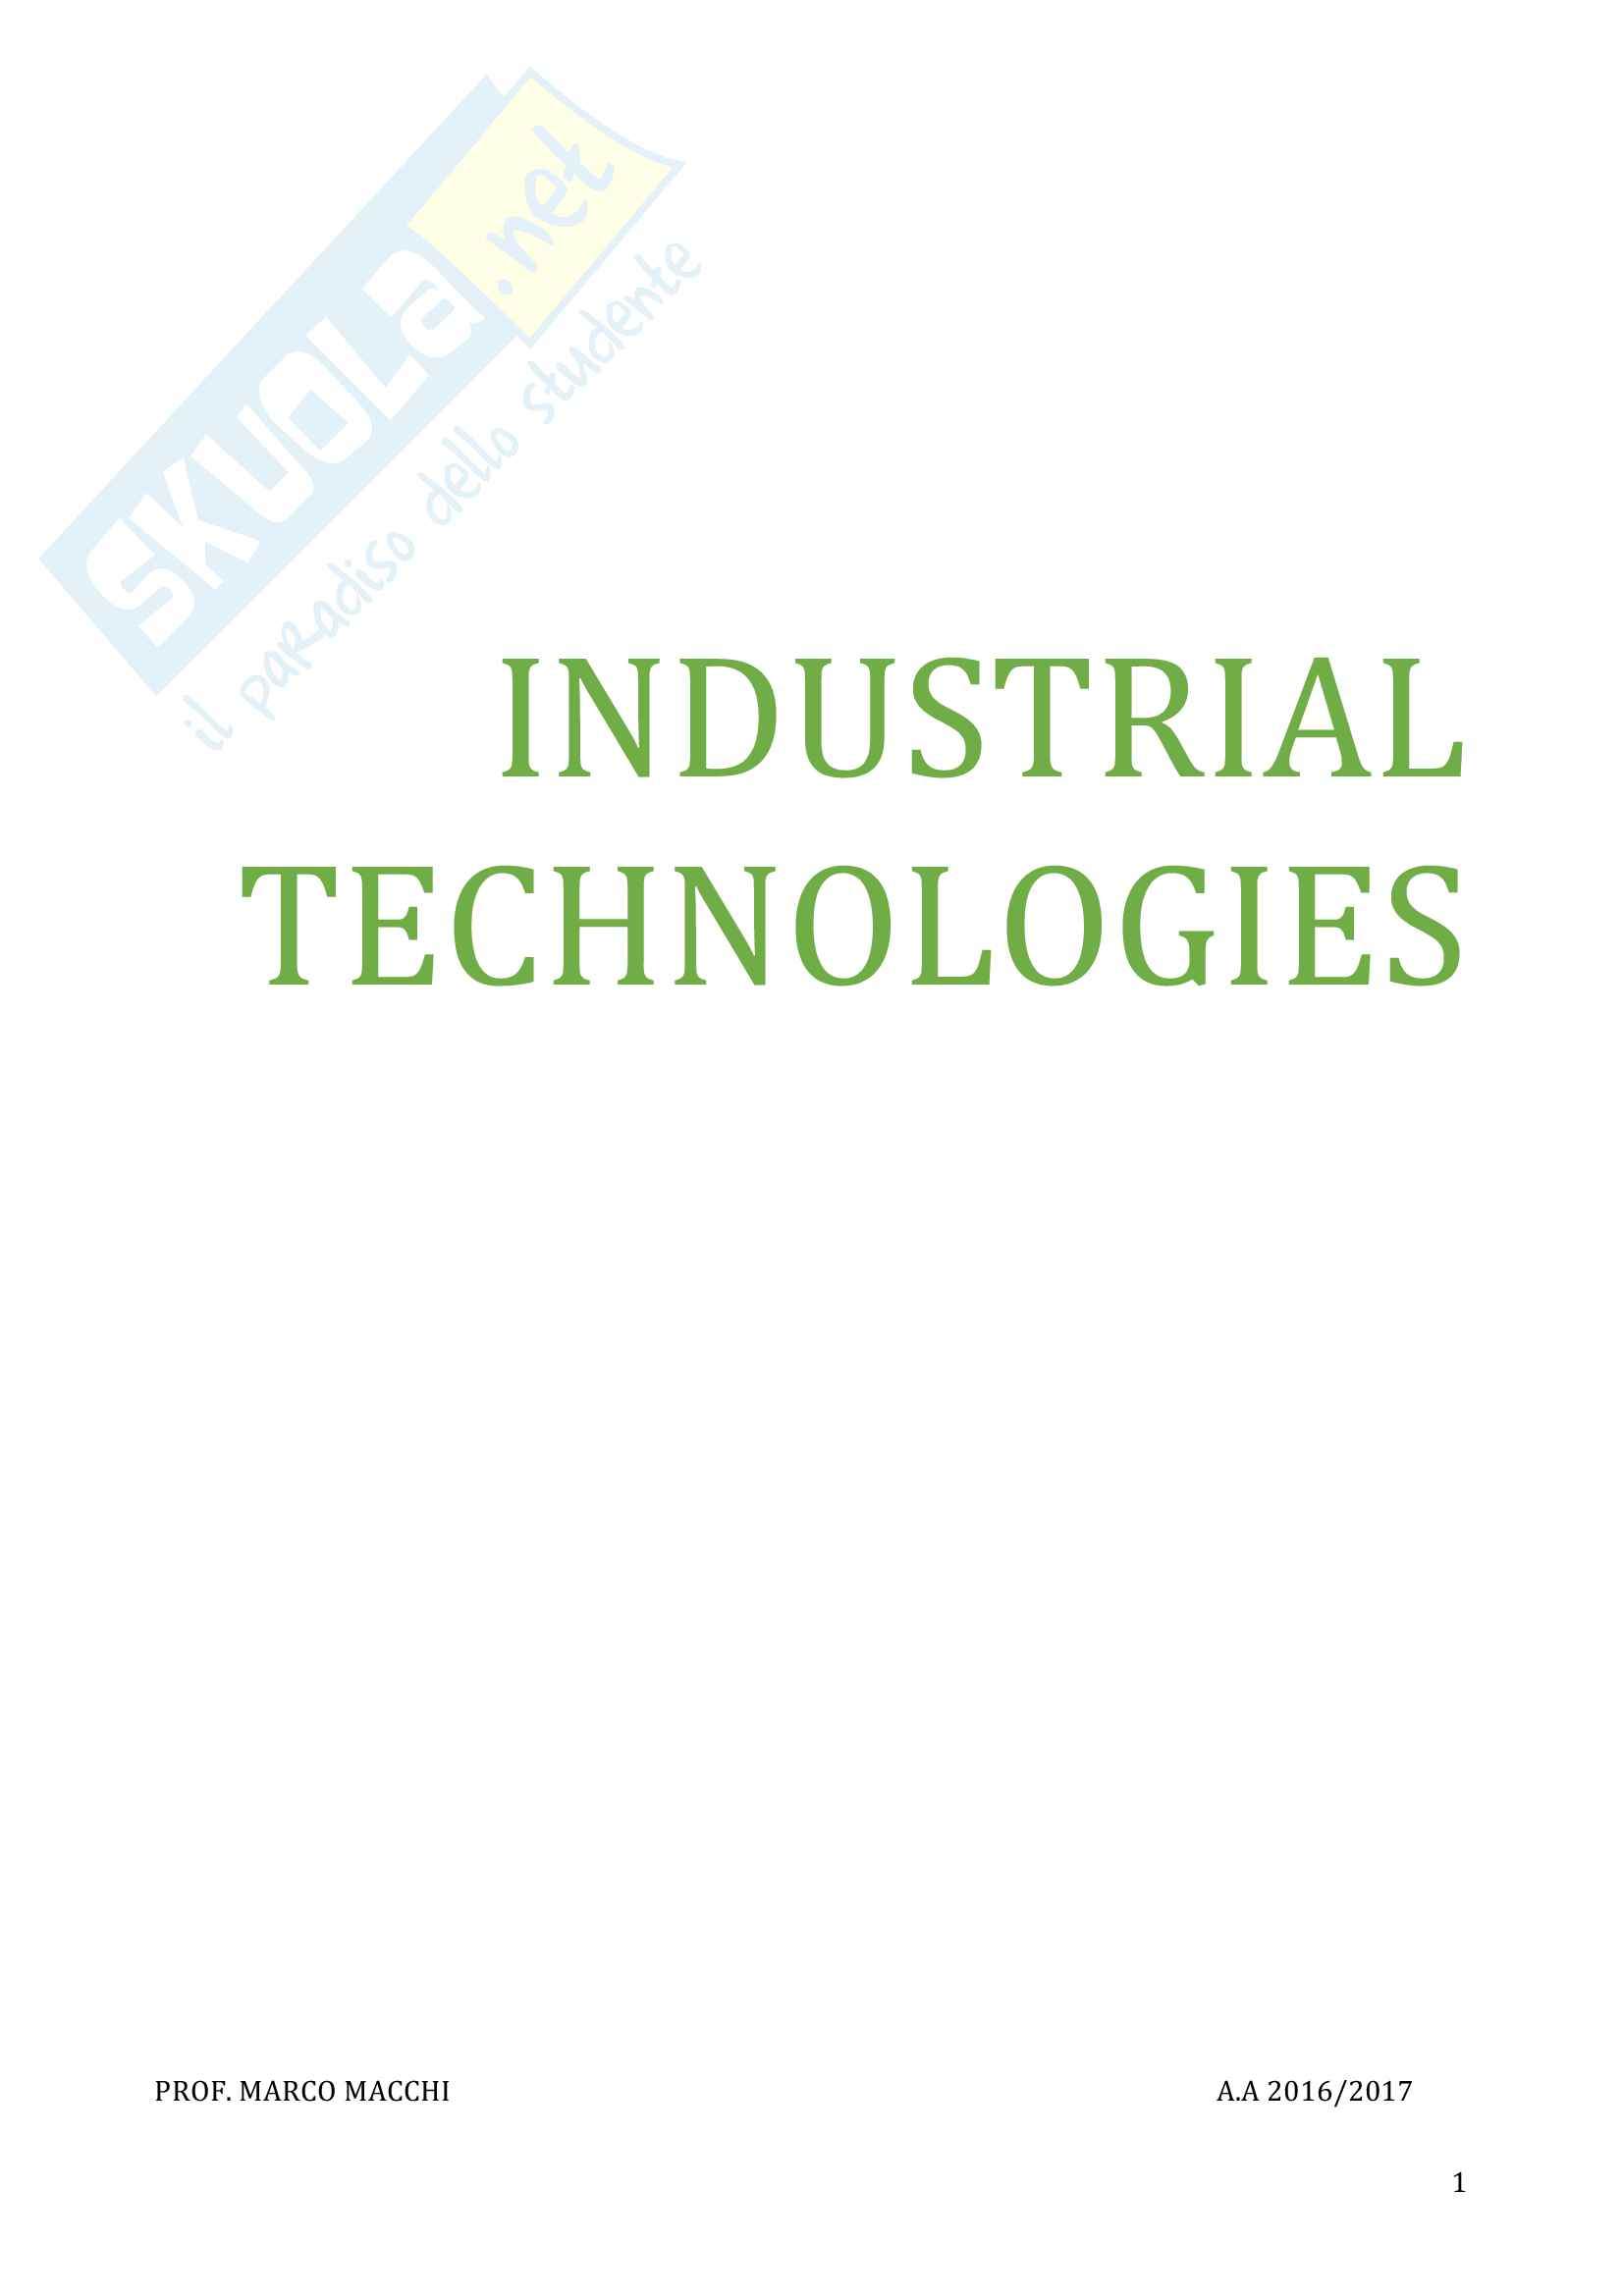 Industrial Technologies